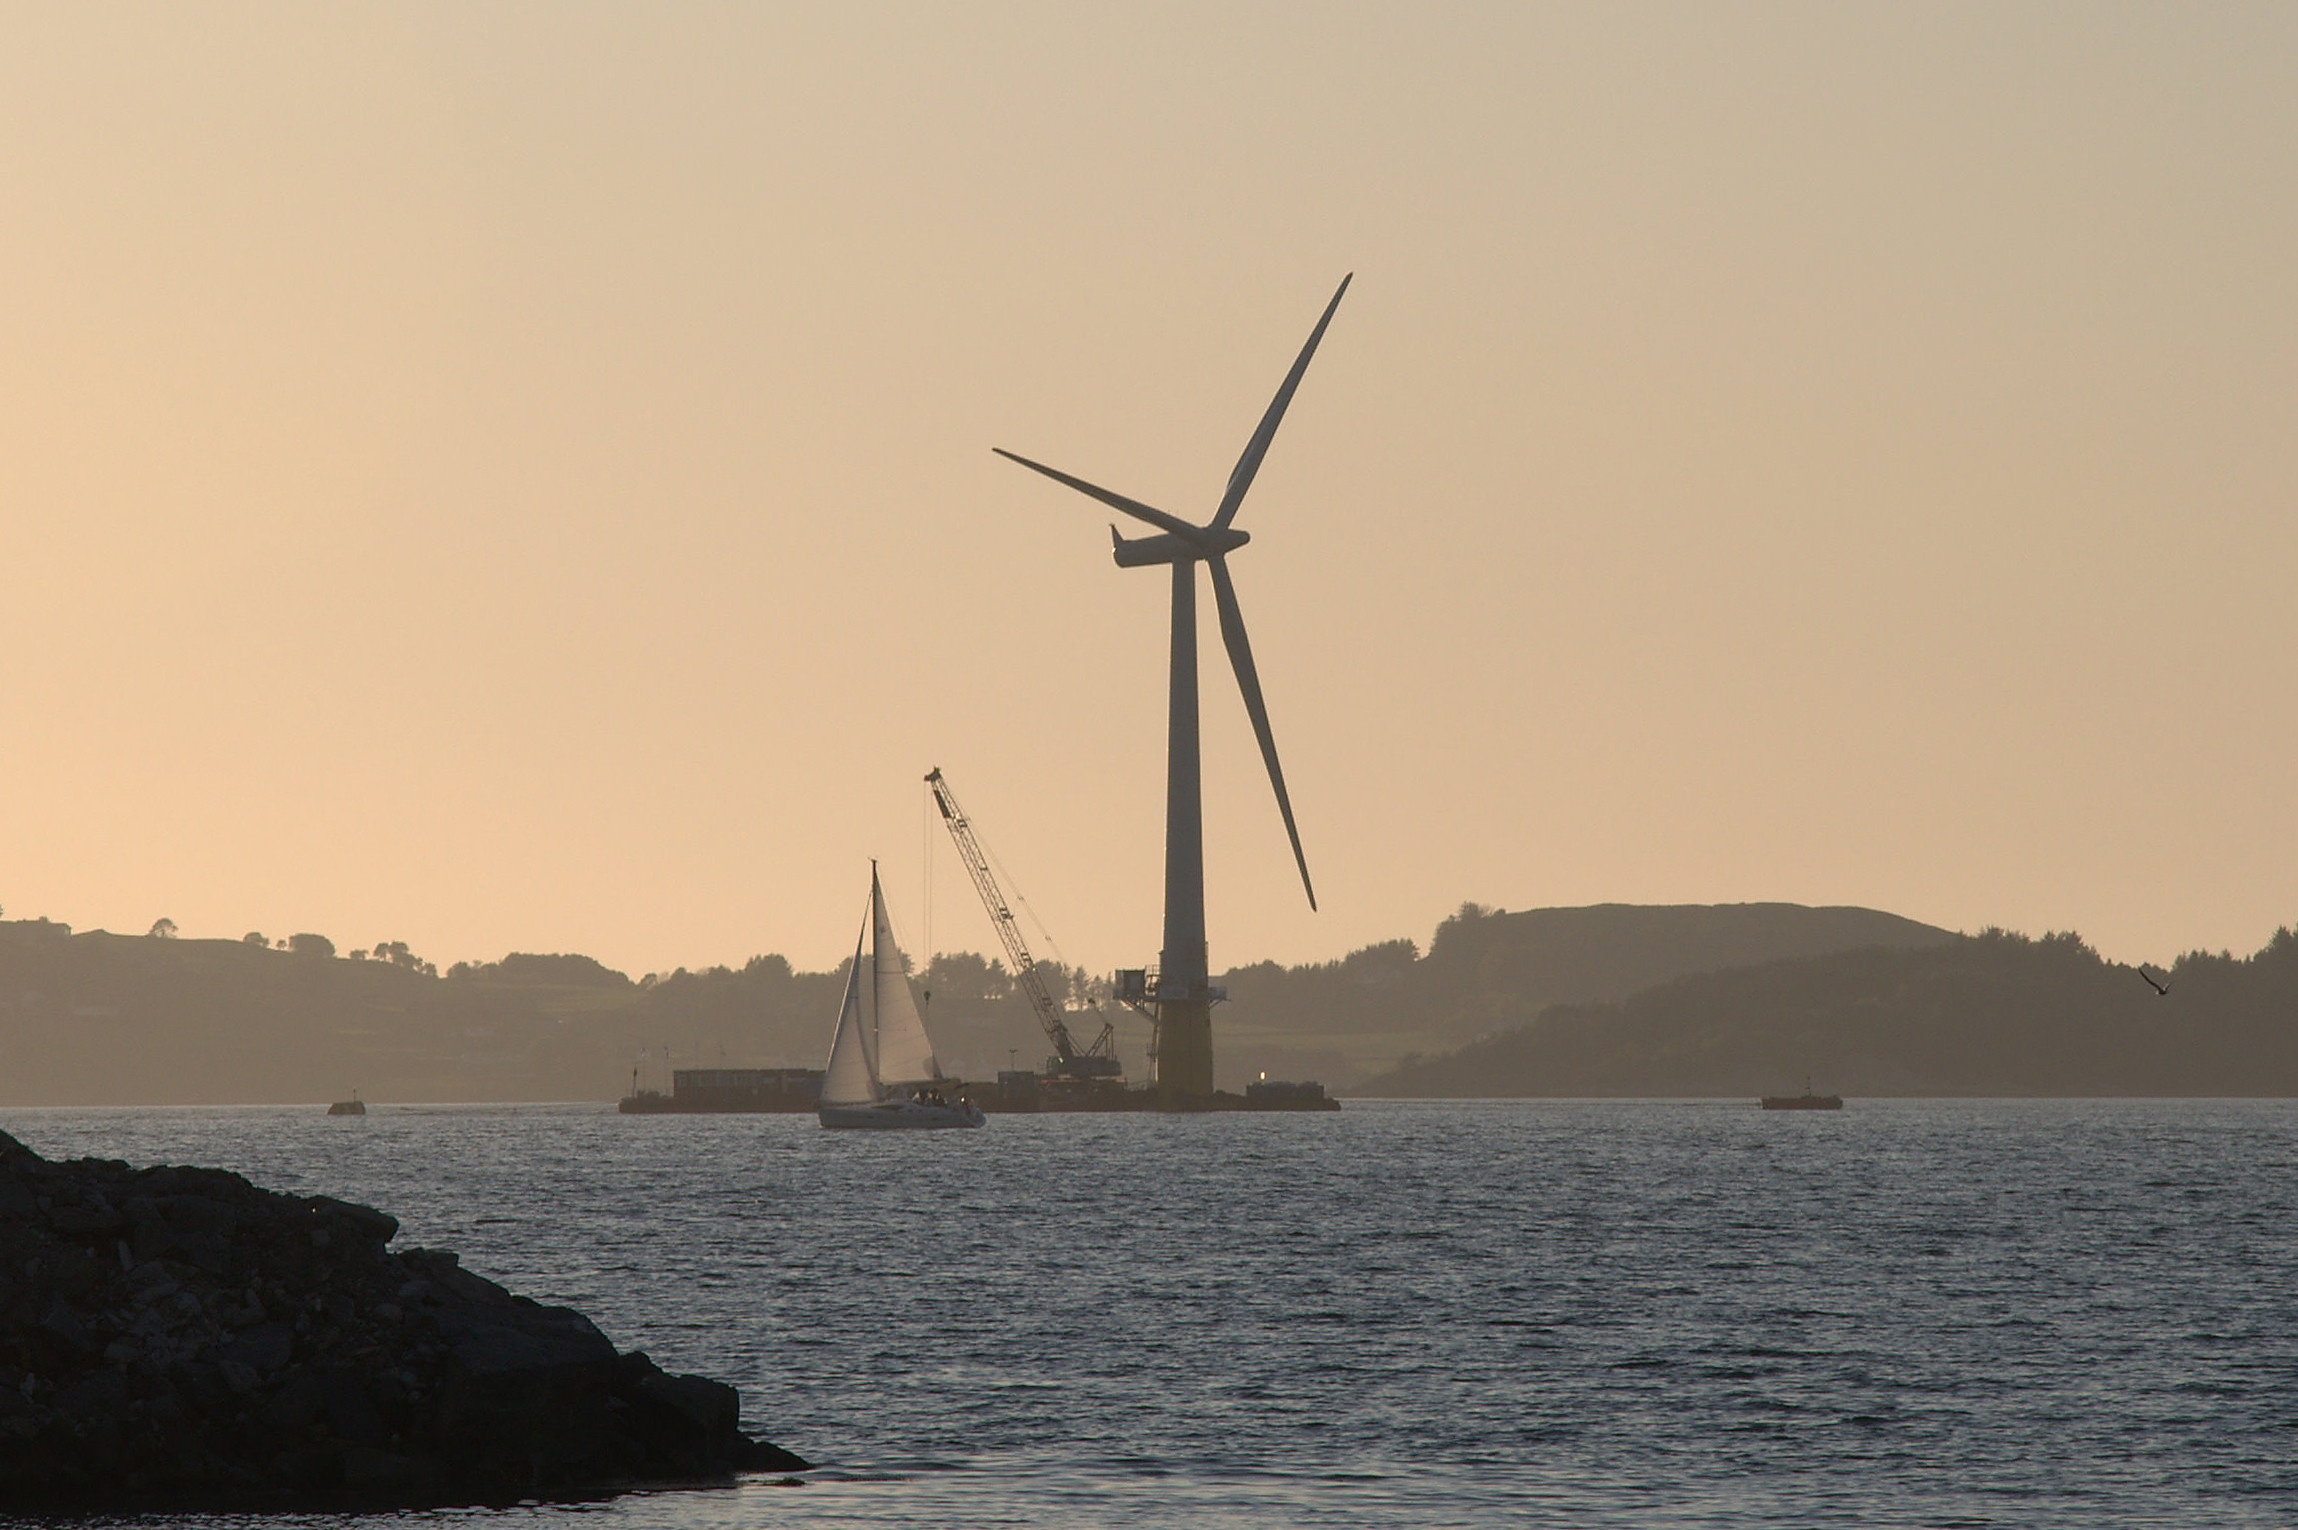 The world's first full-scale floating wind turbine, Hywind, being assembled in the Åmøy Fjord near Stavanger, Norway in 2009, before deployment in the North Sea